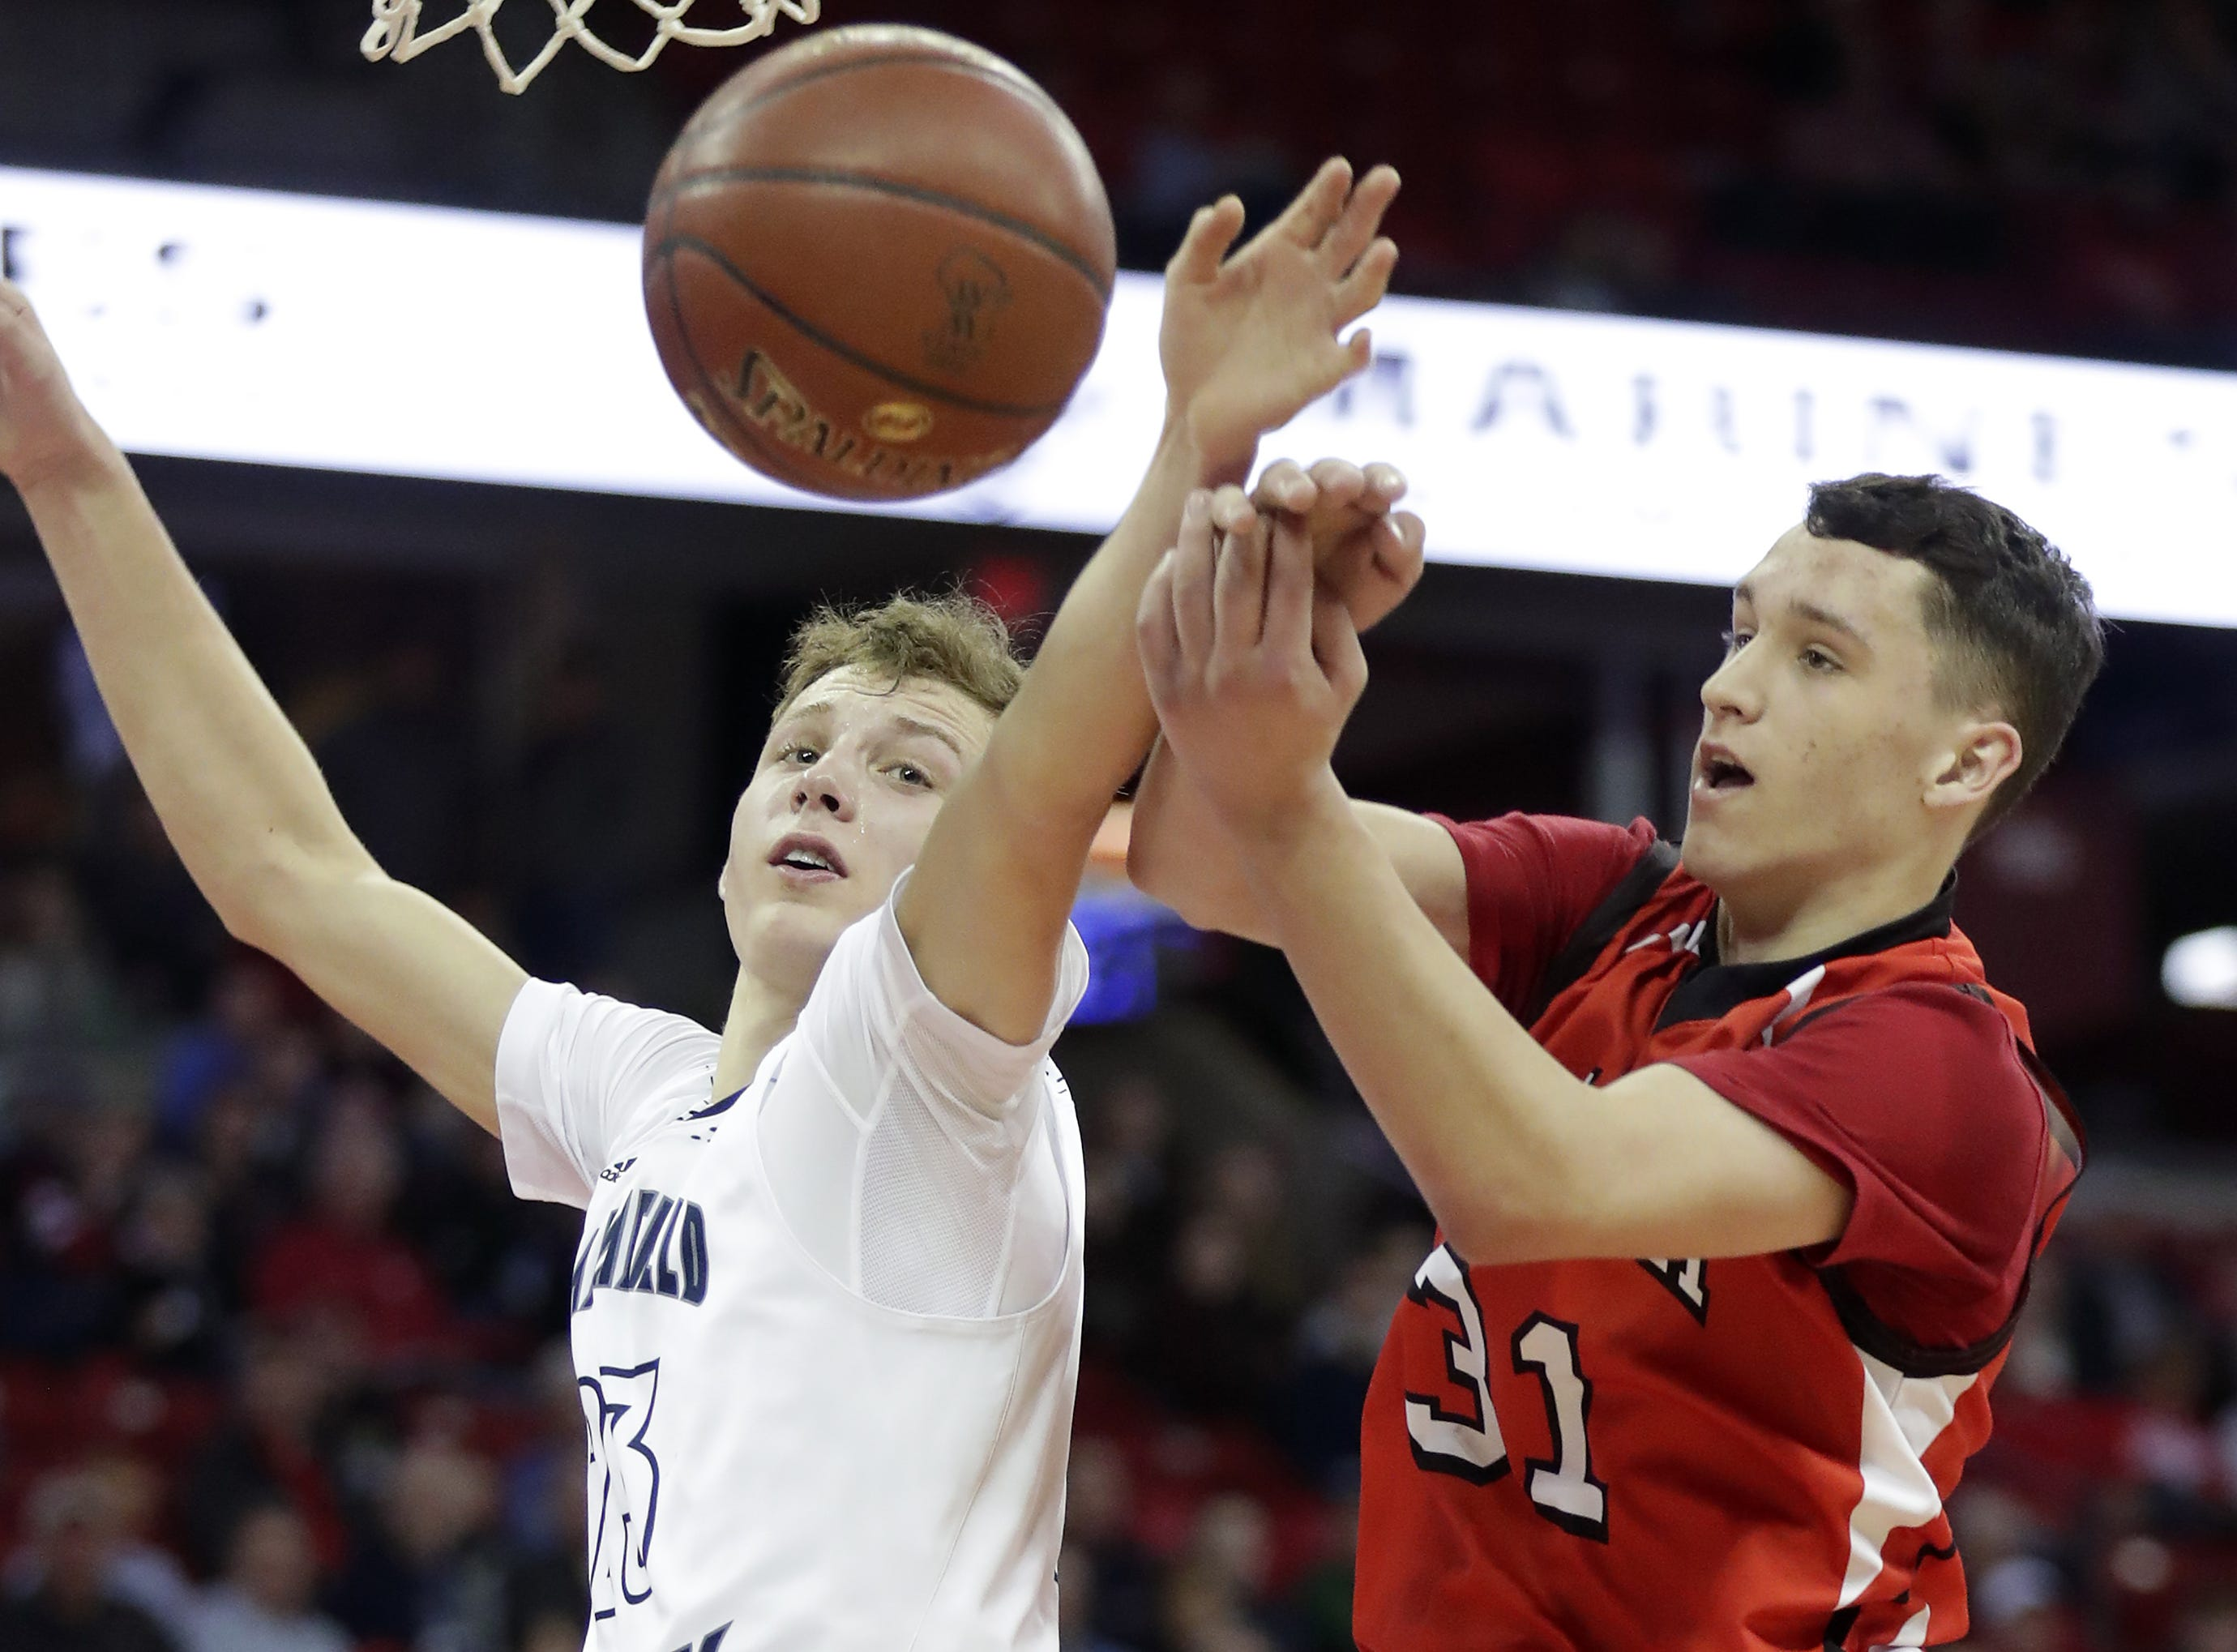 Columbus Catholic High School's #23 Bryce Fuerlinger rebounds against Bangor High School's #31 Hank Reader during their WIAA Division 5 boys basketball state semifinal on Friday, March 15, 2019, at the Kohl Center in Madison, Wis. Clumbus defeated Bangor 69 to 66. Wm. Glasheen/USA TODAY NETWORK-Wisconsin.